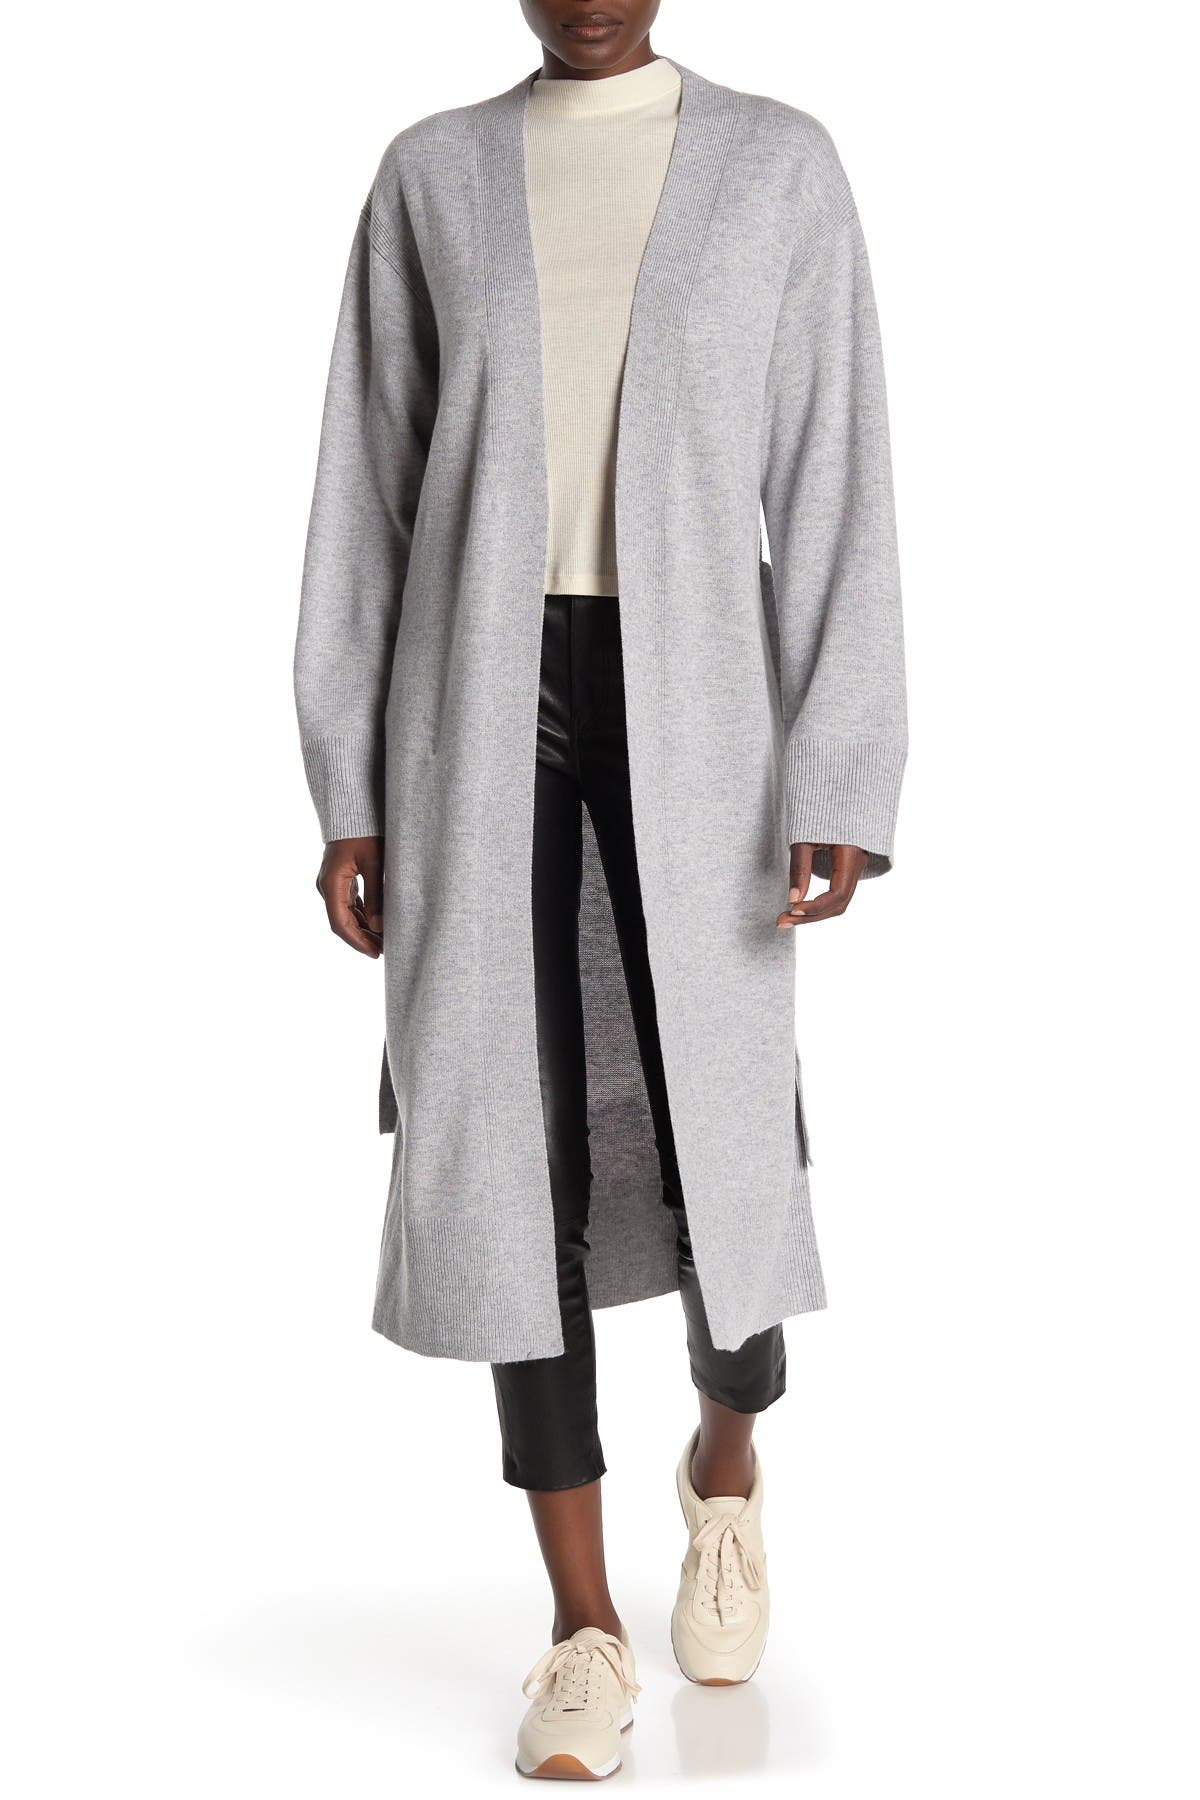 Image of Theory Waist Tie Wool Blend Cardigan Duster